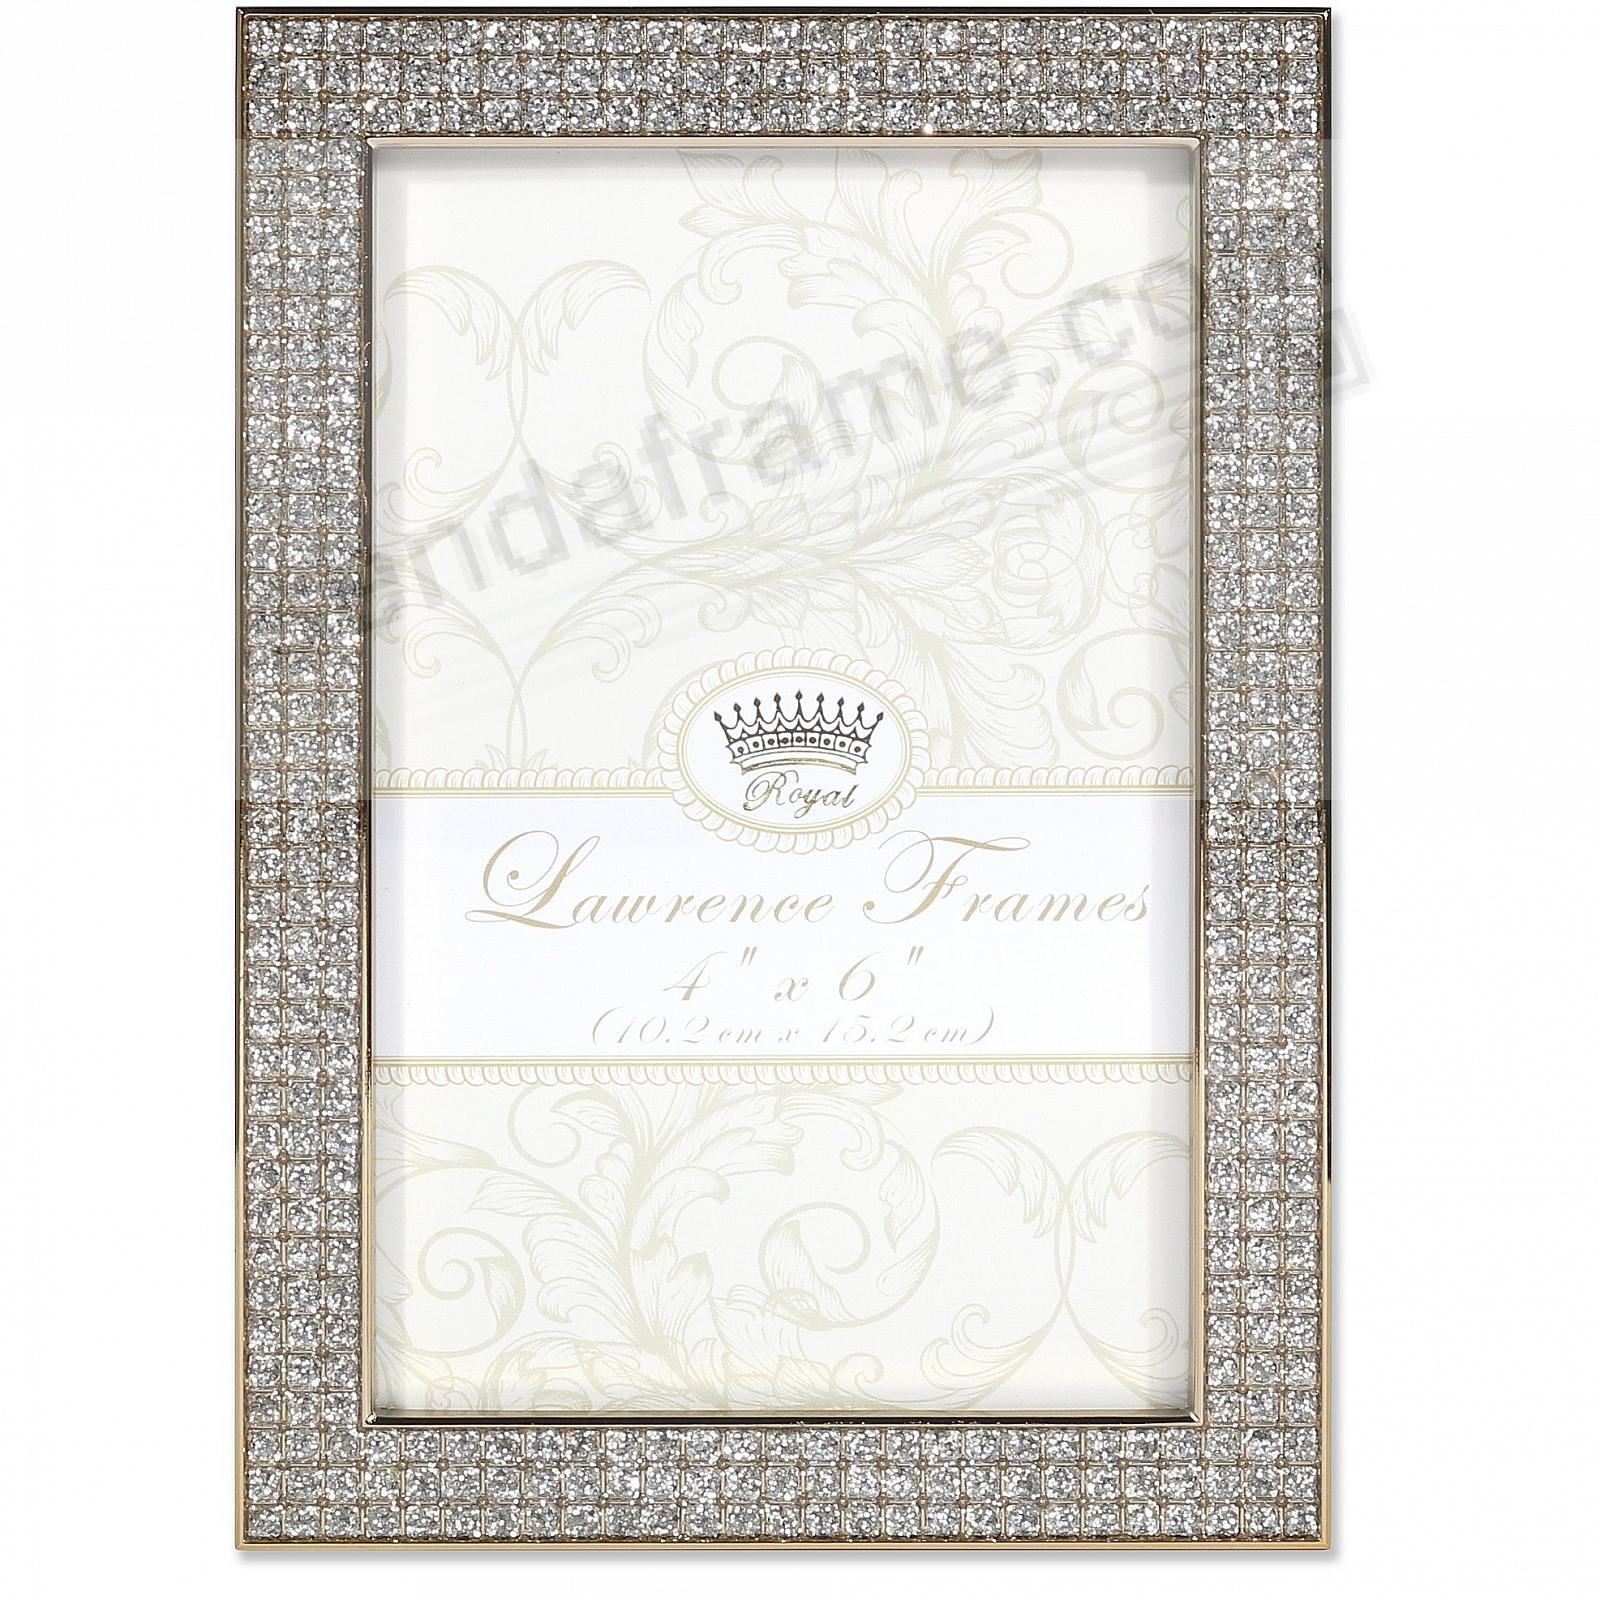 WHITE JEWELS GOLD/Crystal frame